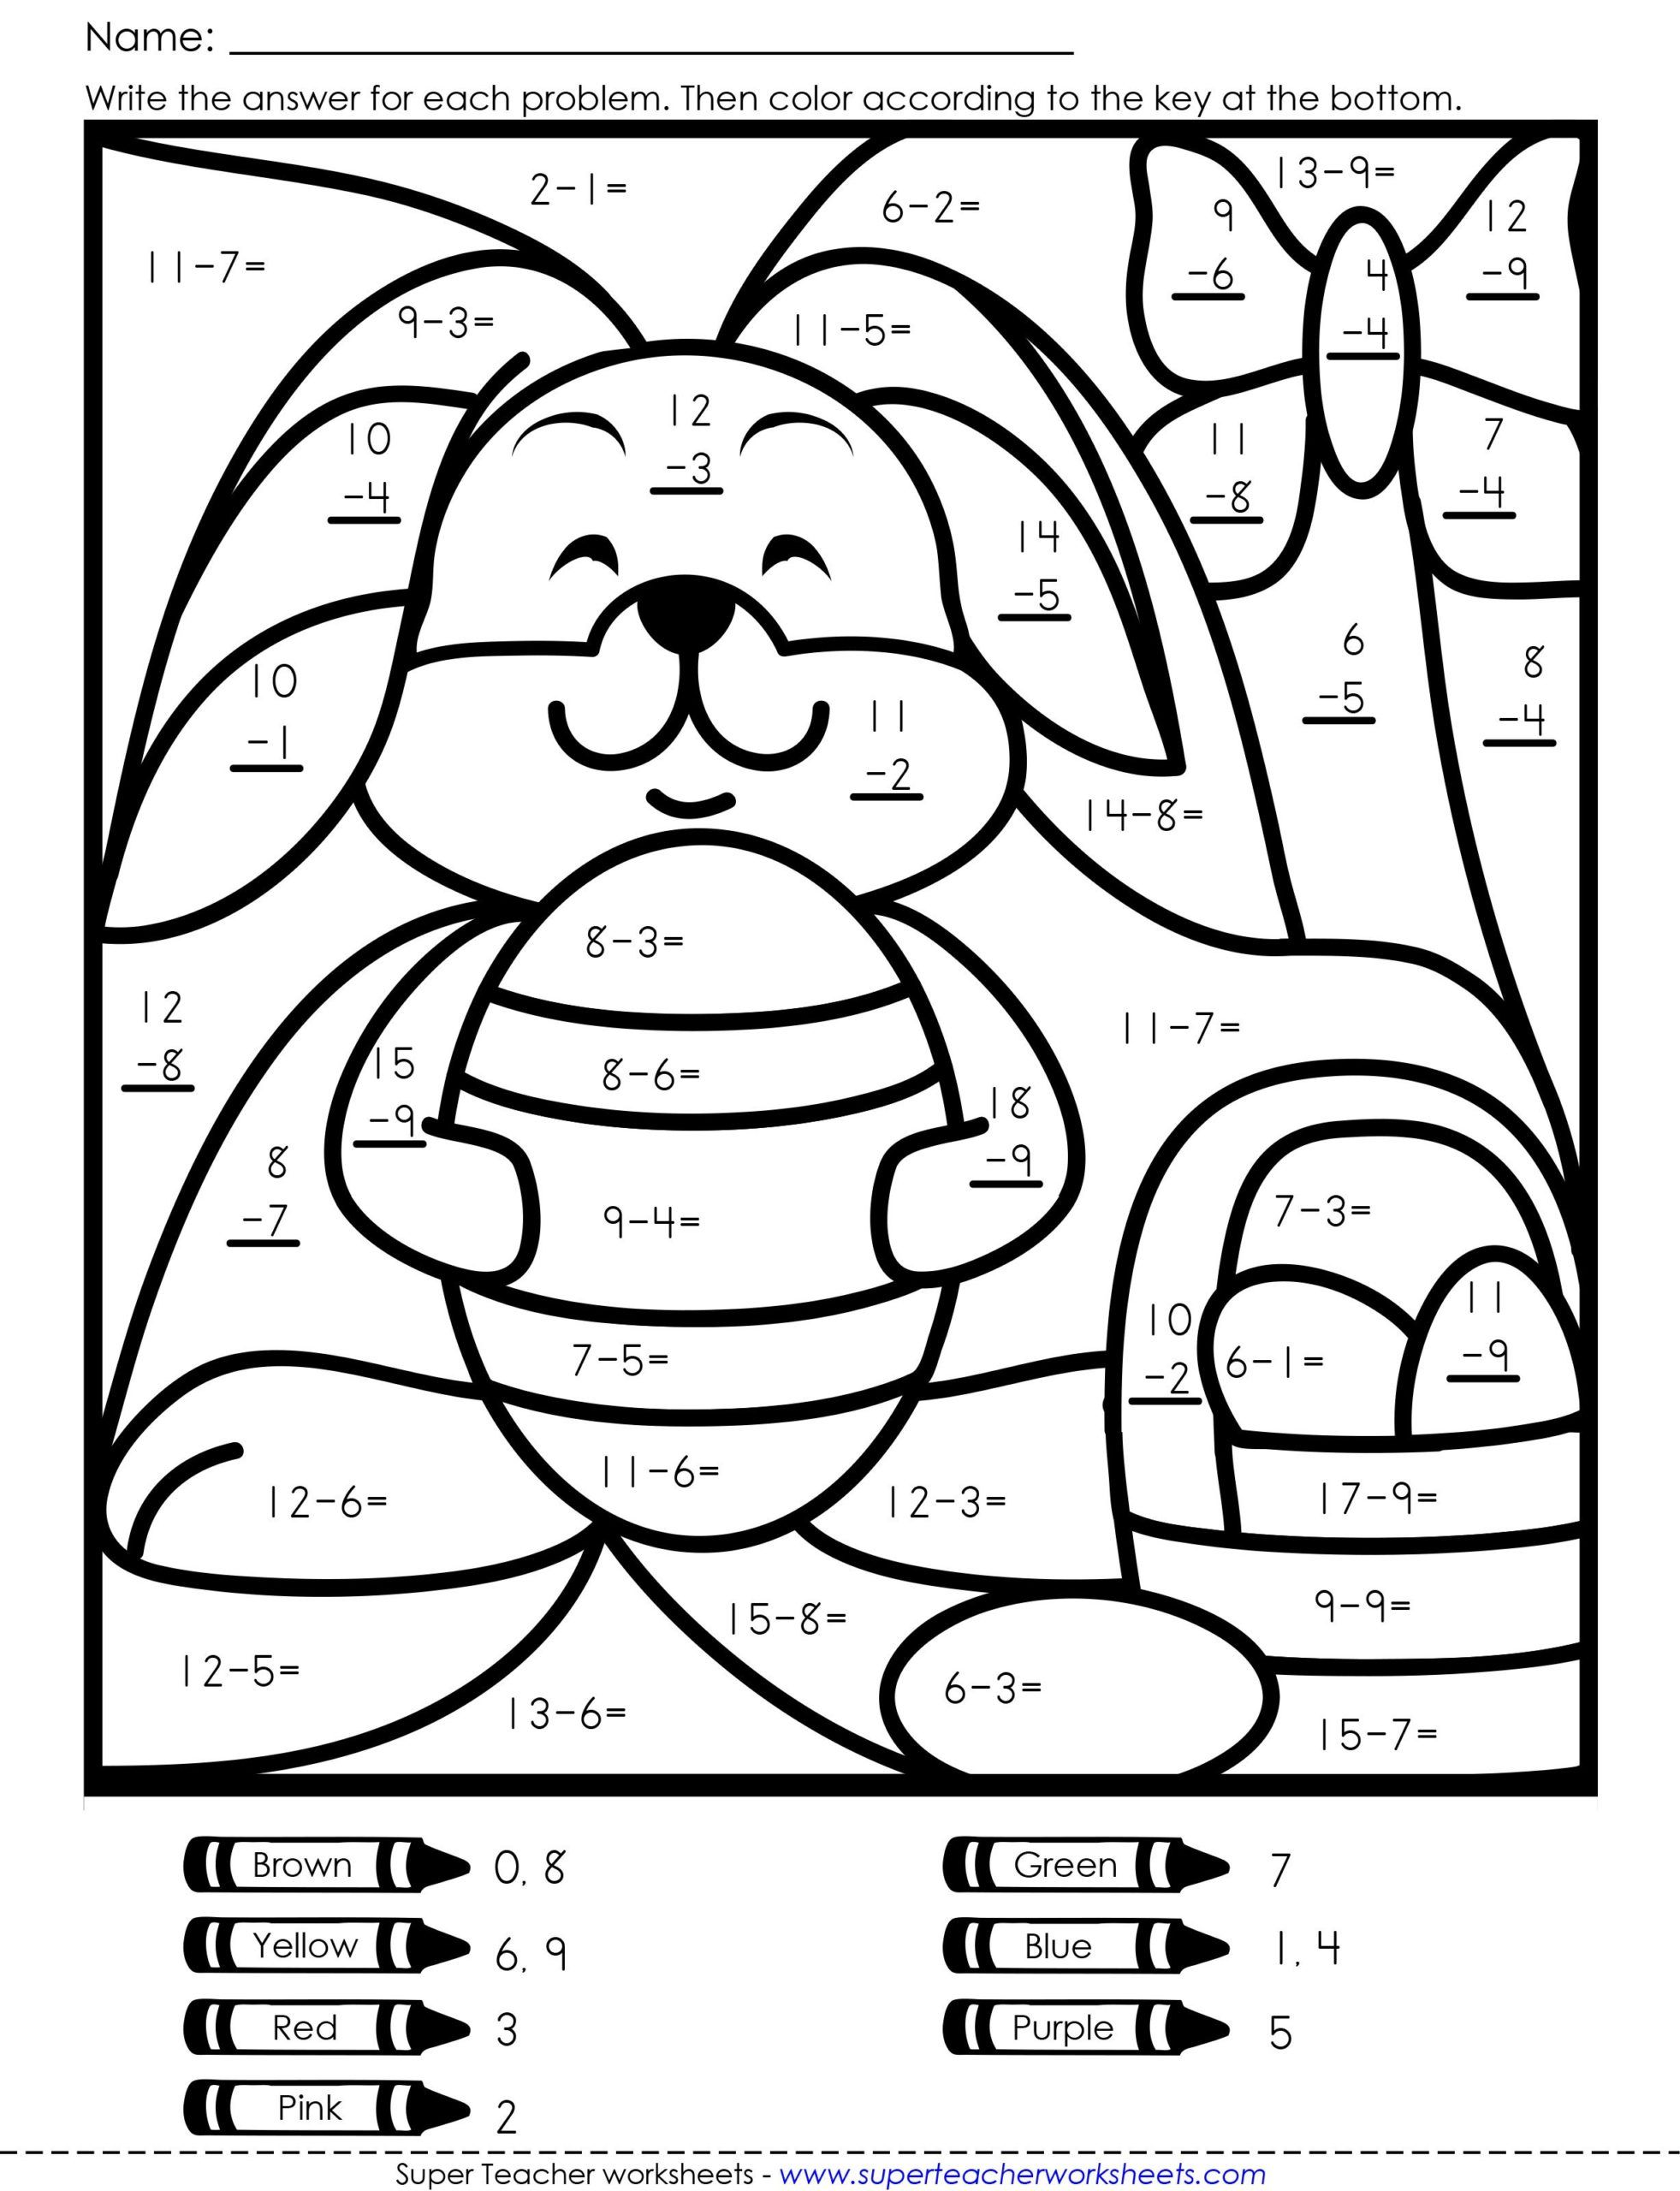 small resolution of Coloring Addition Worksheets For Grade 1 - colouring mermaid   Easter math